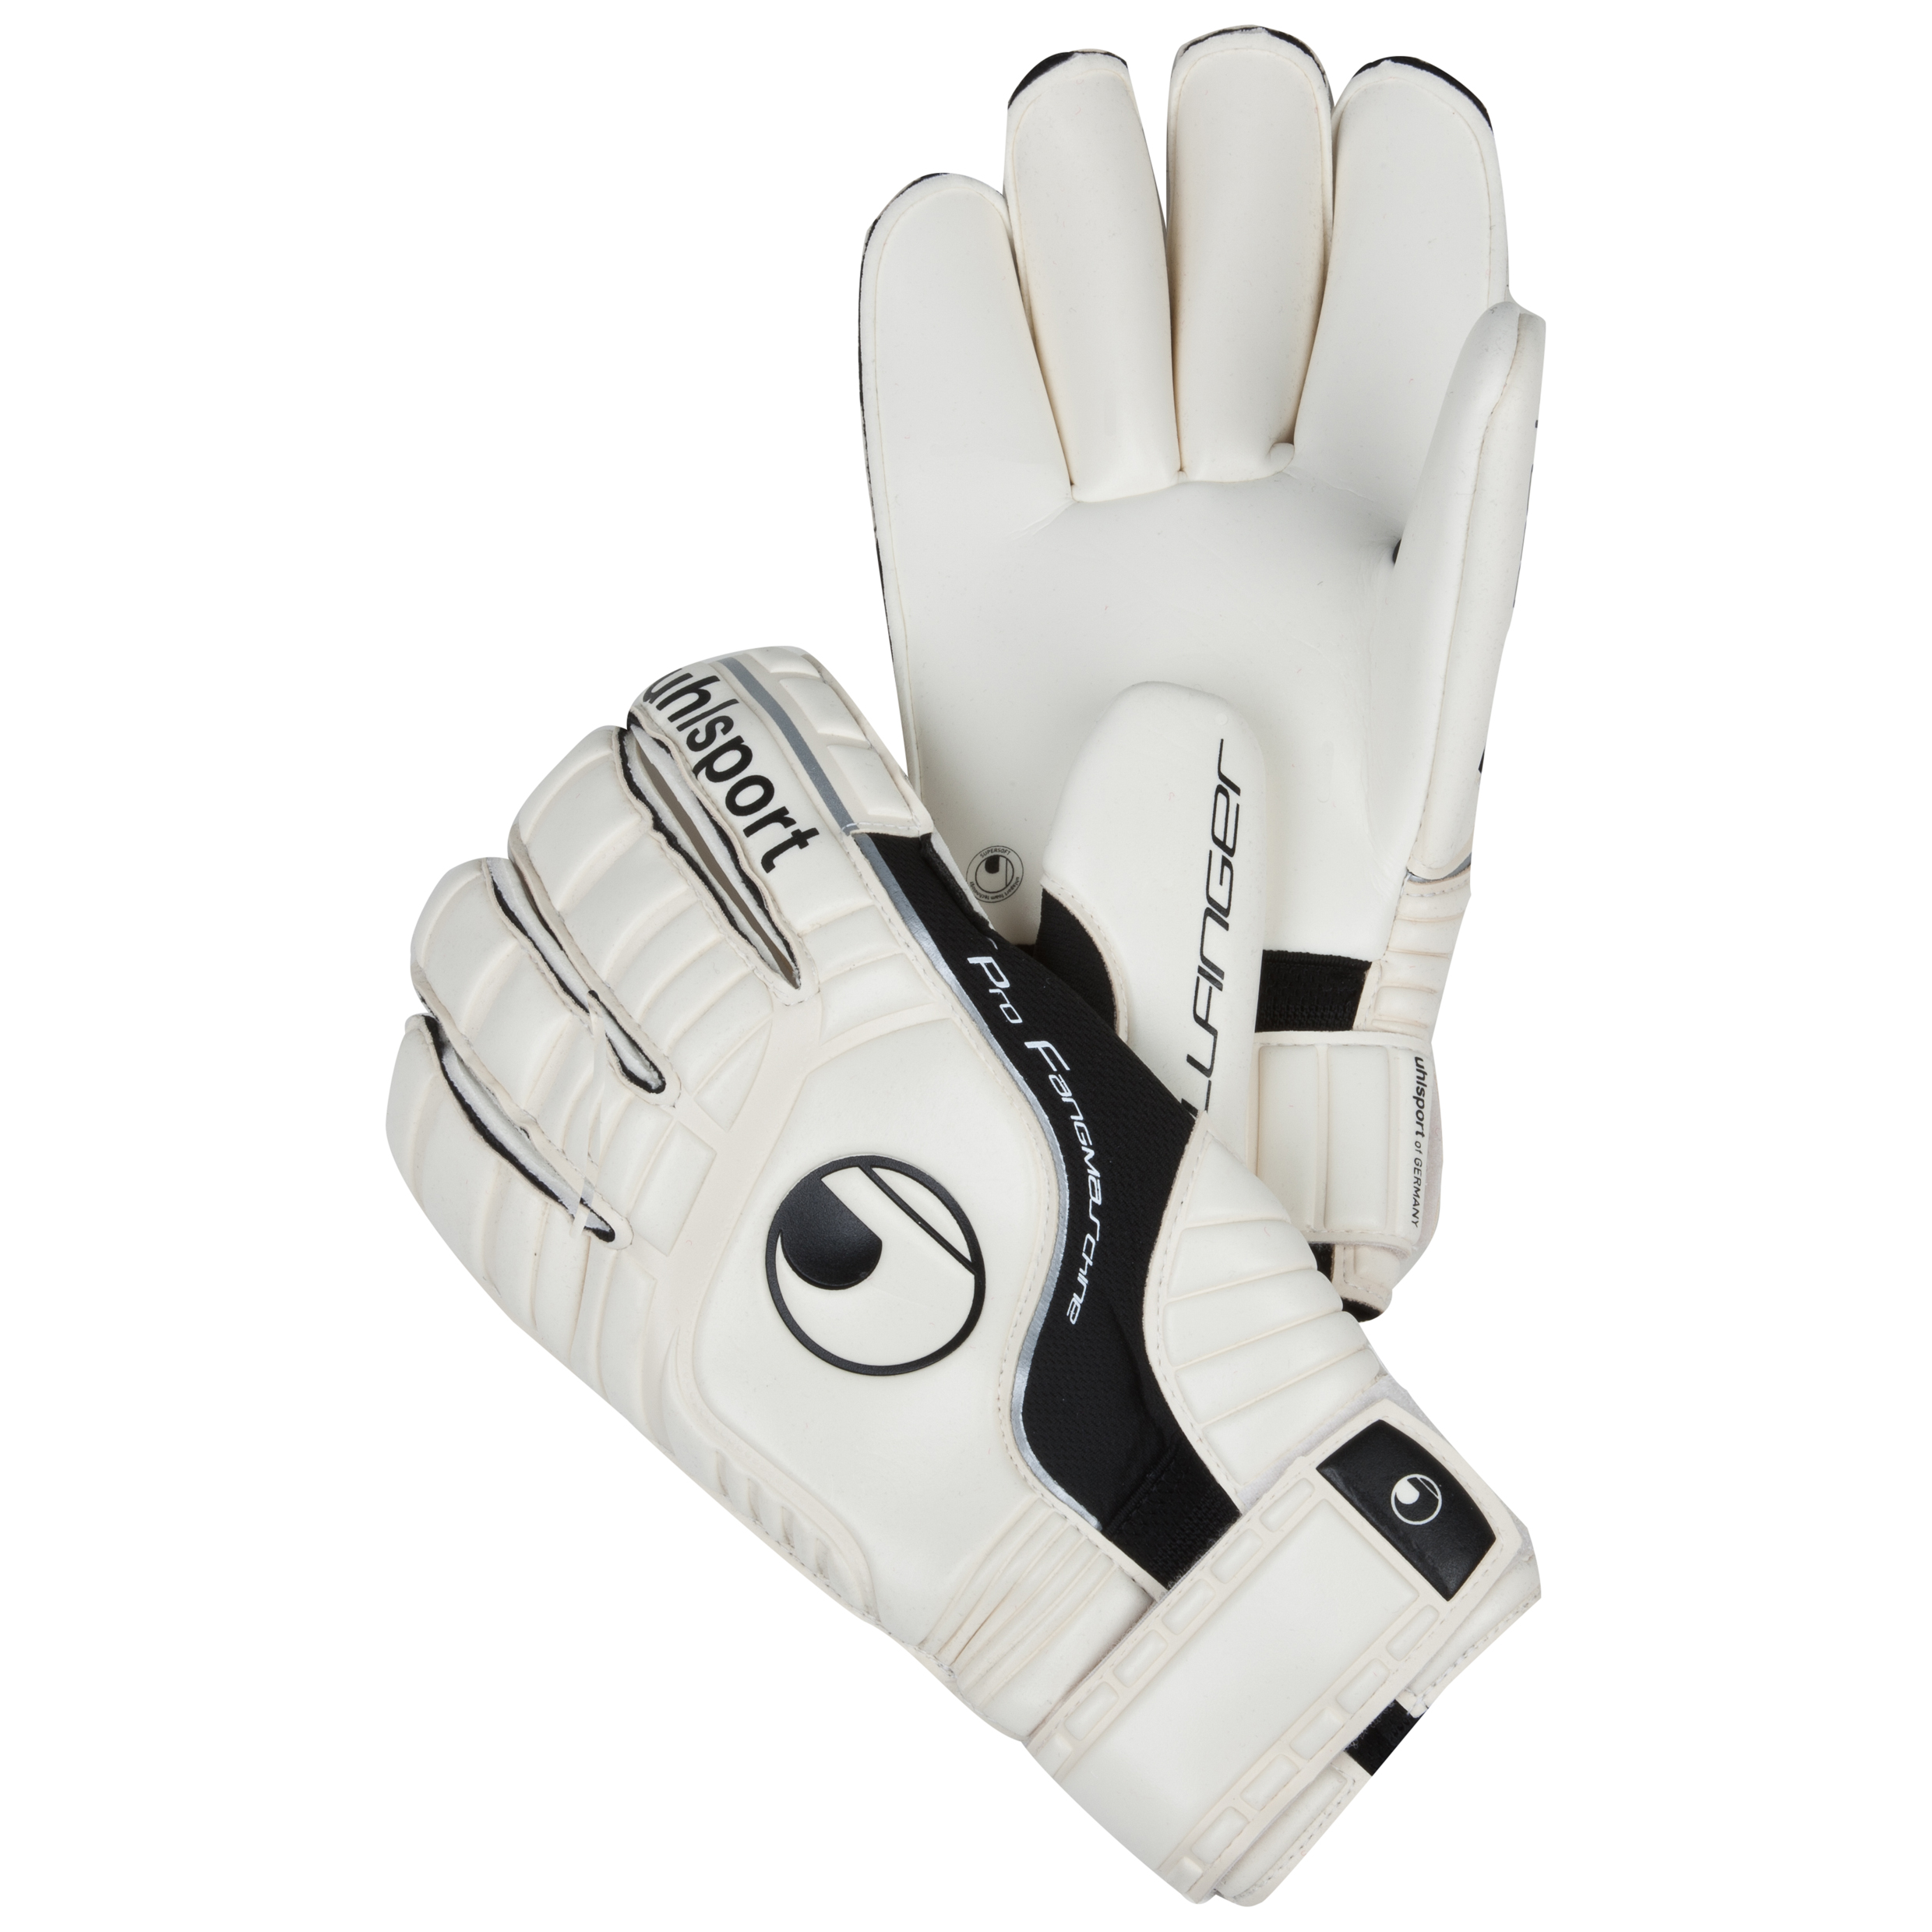 Uhlsport Pro Comfort Rollfinger Goalkeeper Gloves - White/Black